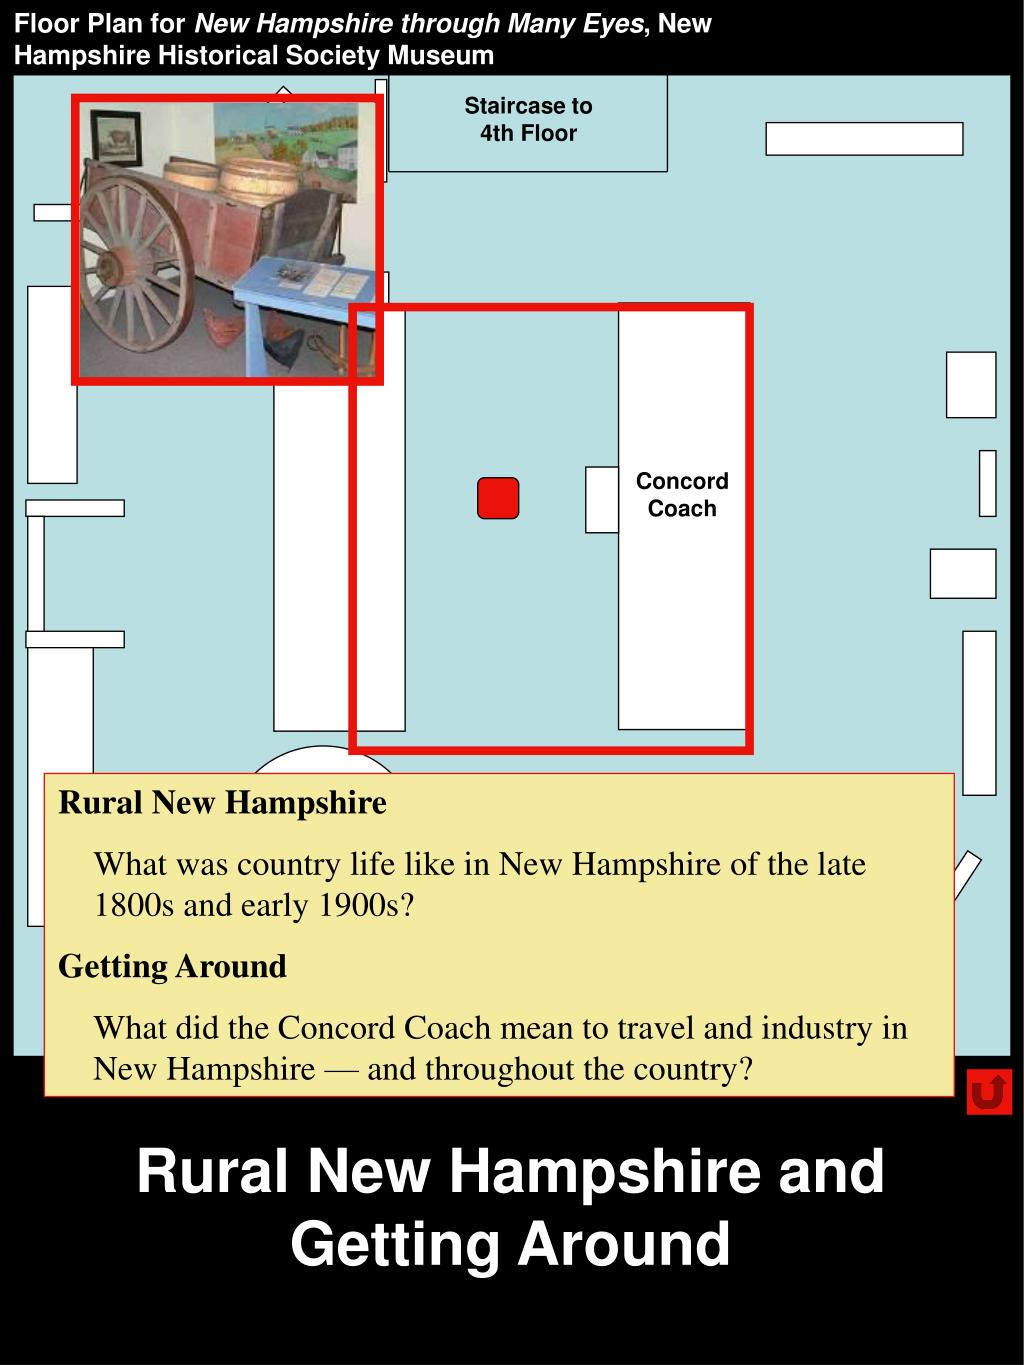 Rural New Hampshire and Getting Around